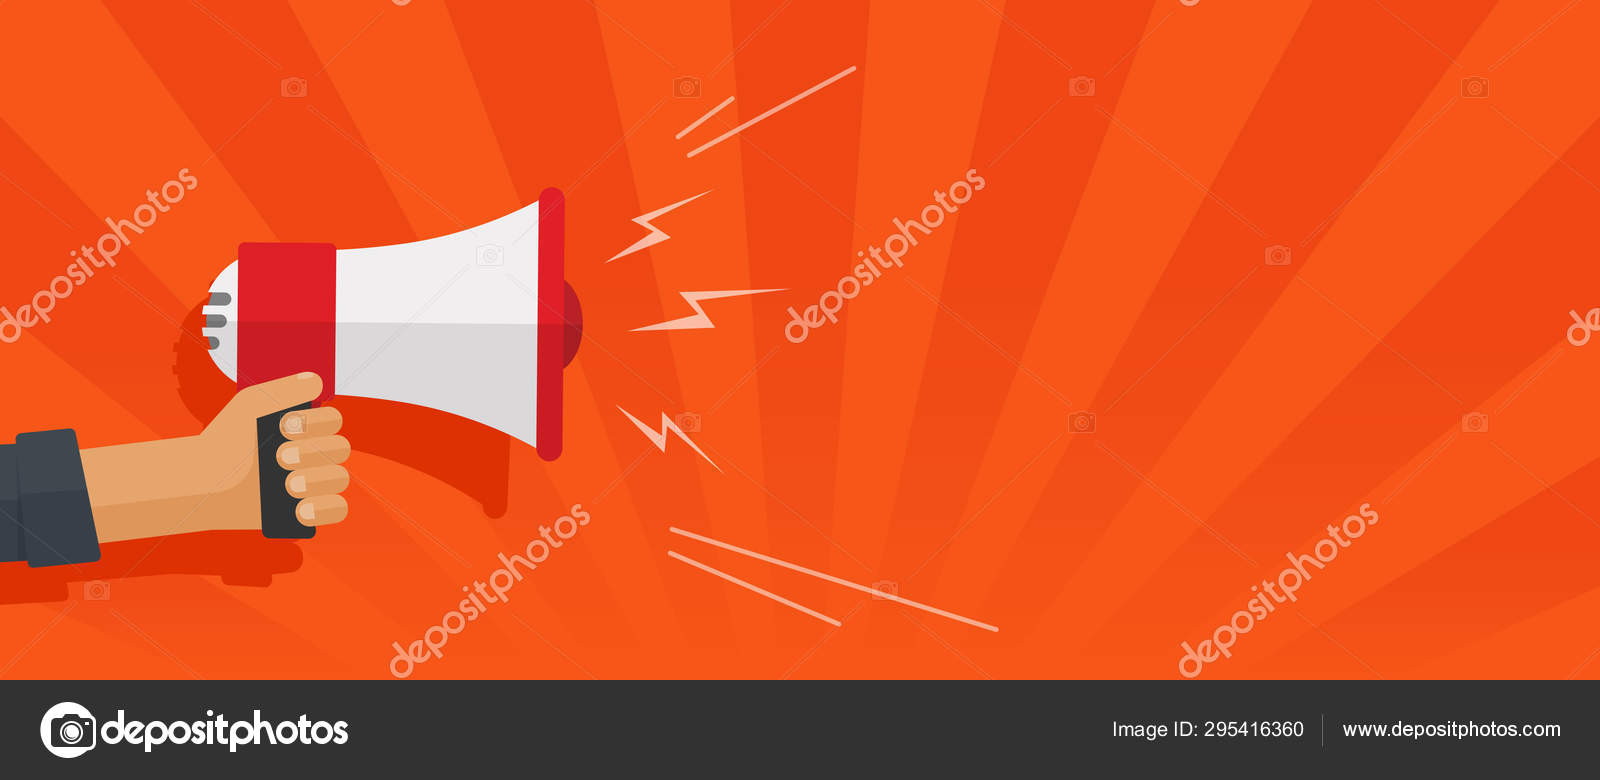 loudspeaker or megaphone in hand shouting vector illustration flat cartoon hand holding bullhorn with loud sound announcement and text or copy space template stock vector c vladwel 295416360 https depositphotos com 295416360 stock illustration loudspeaker or megaphone in hand html